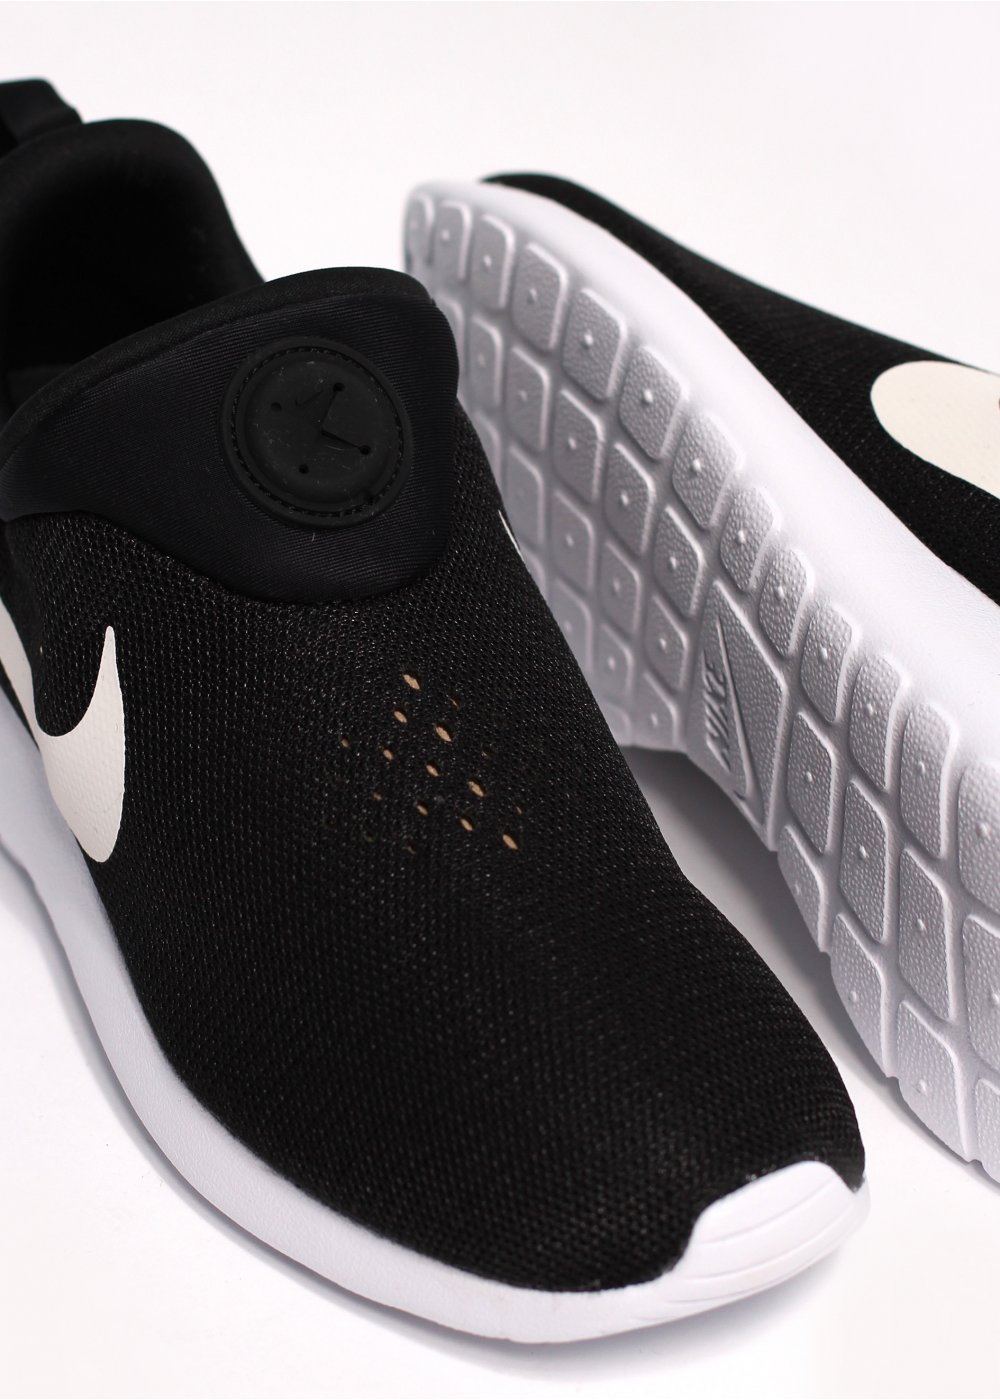 5178a467abca Rosherun Slip On Trainers - Black   White